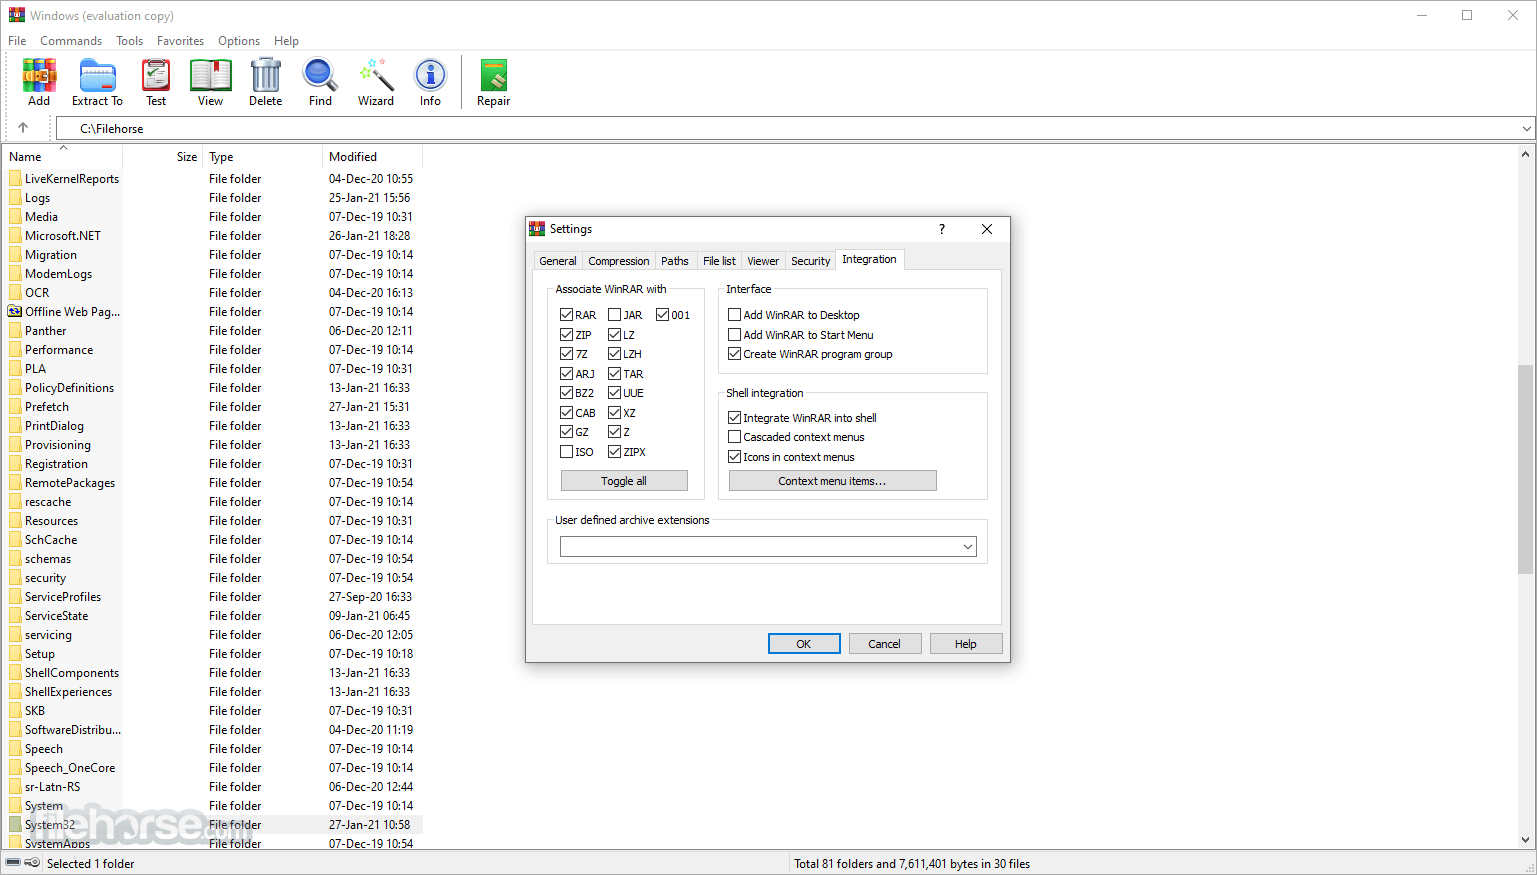 WinRAR 5.50 Beta 4 (32-bit) Screenshot 5